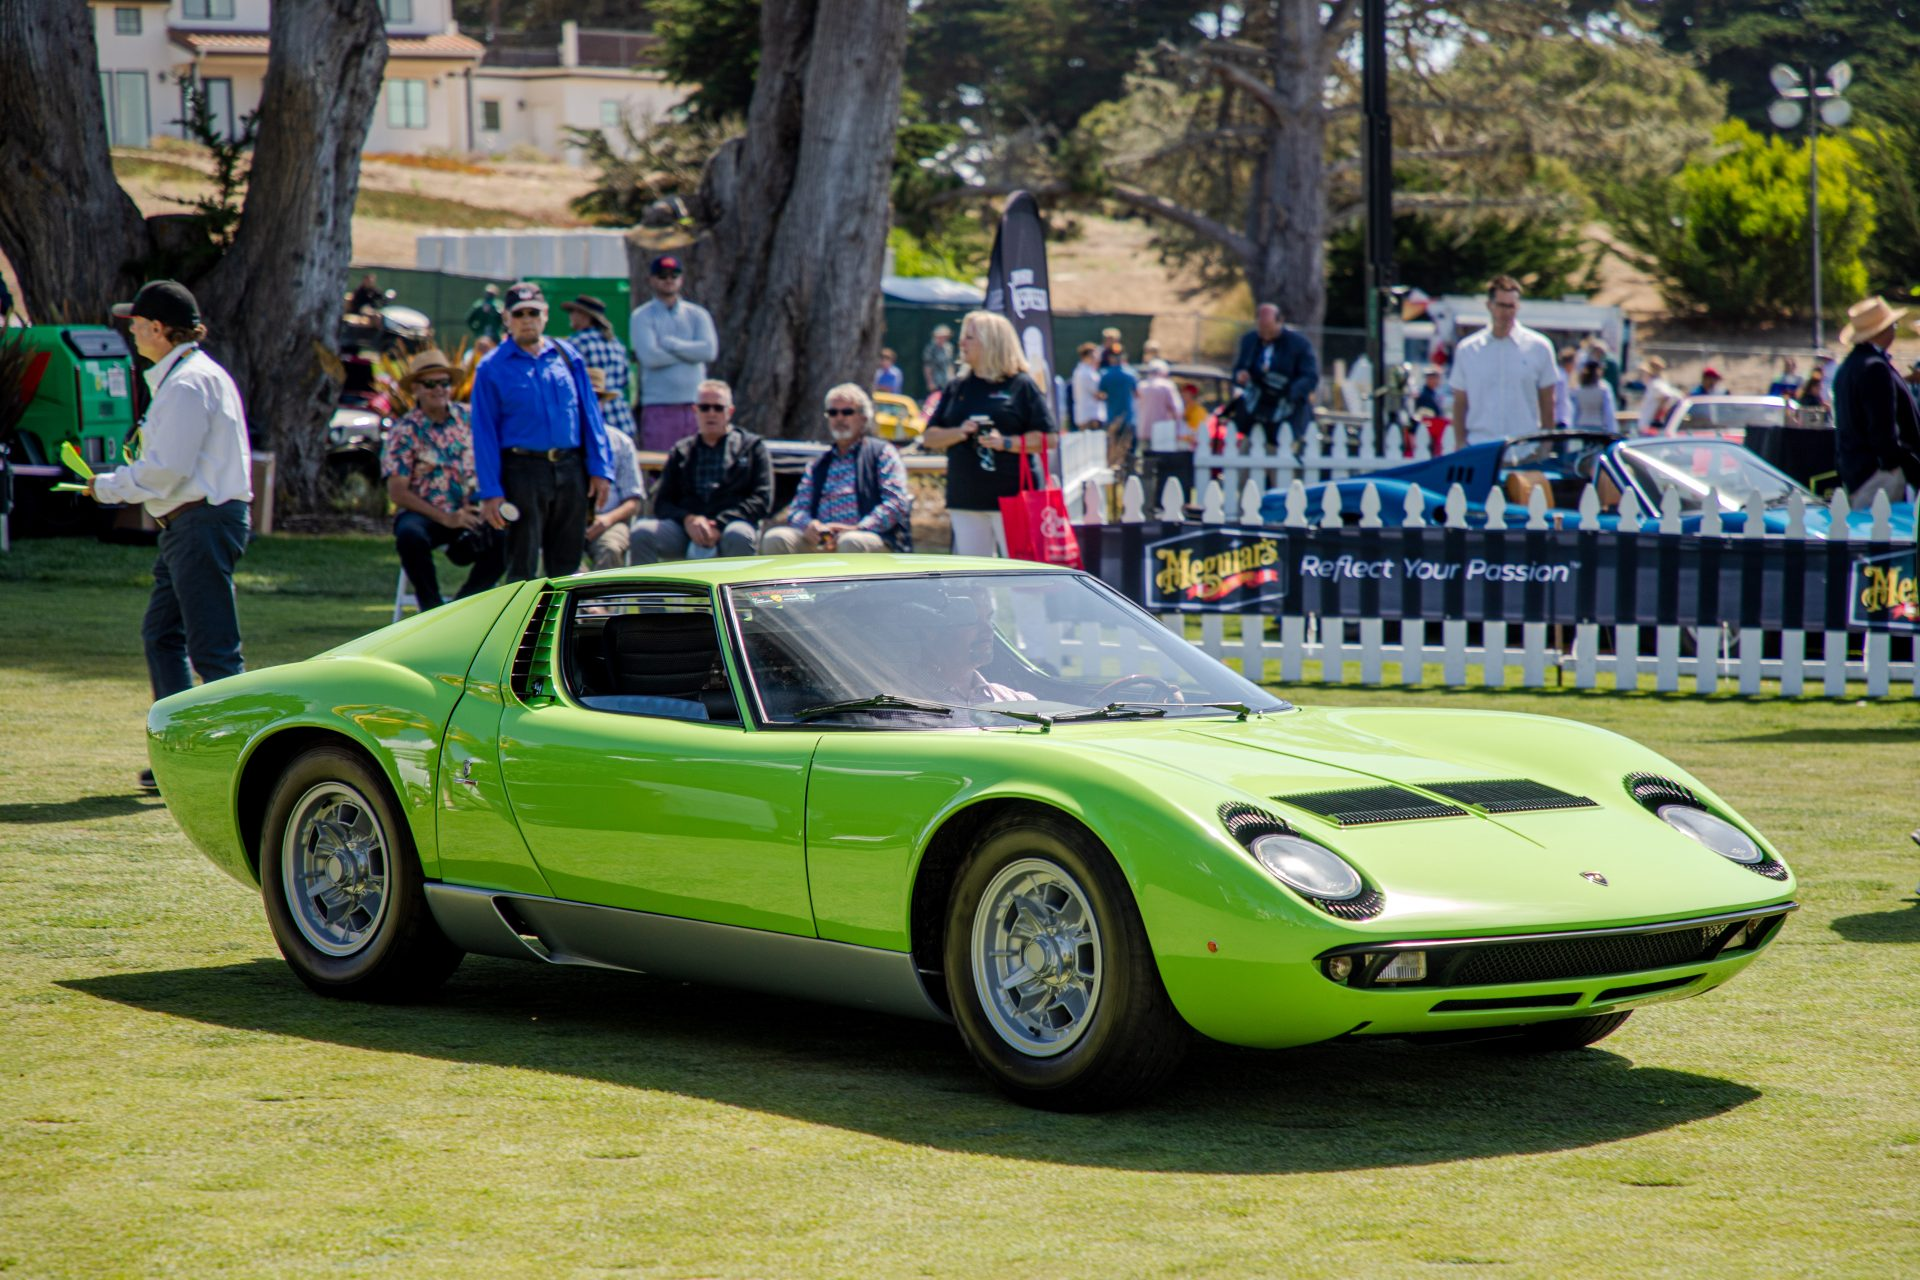 1st place Lamborghini: 1967 Lamborghini Miura P400 owned by Chris Papamichael from New Orleans, LA